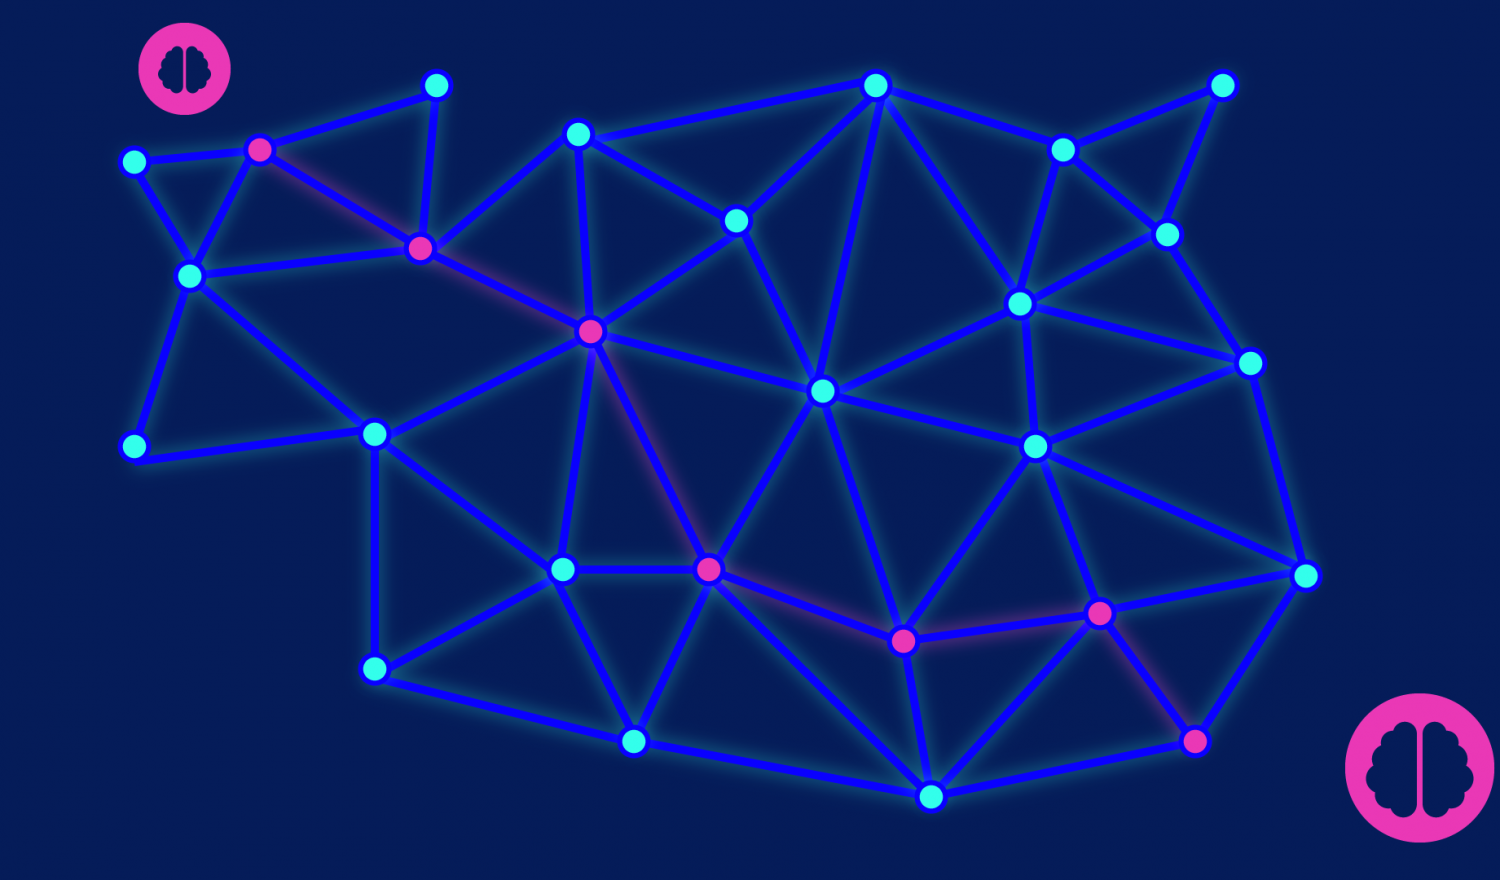 A highlighted route through a stylized software defined network